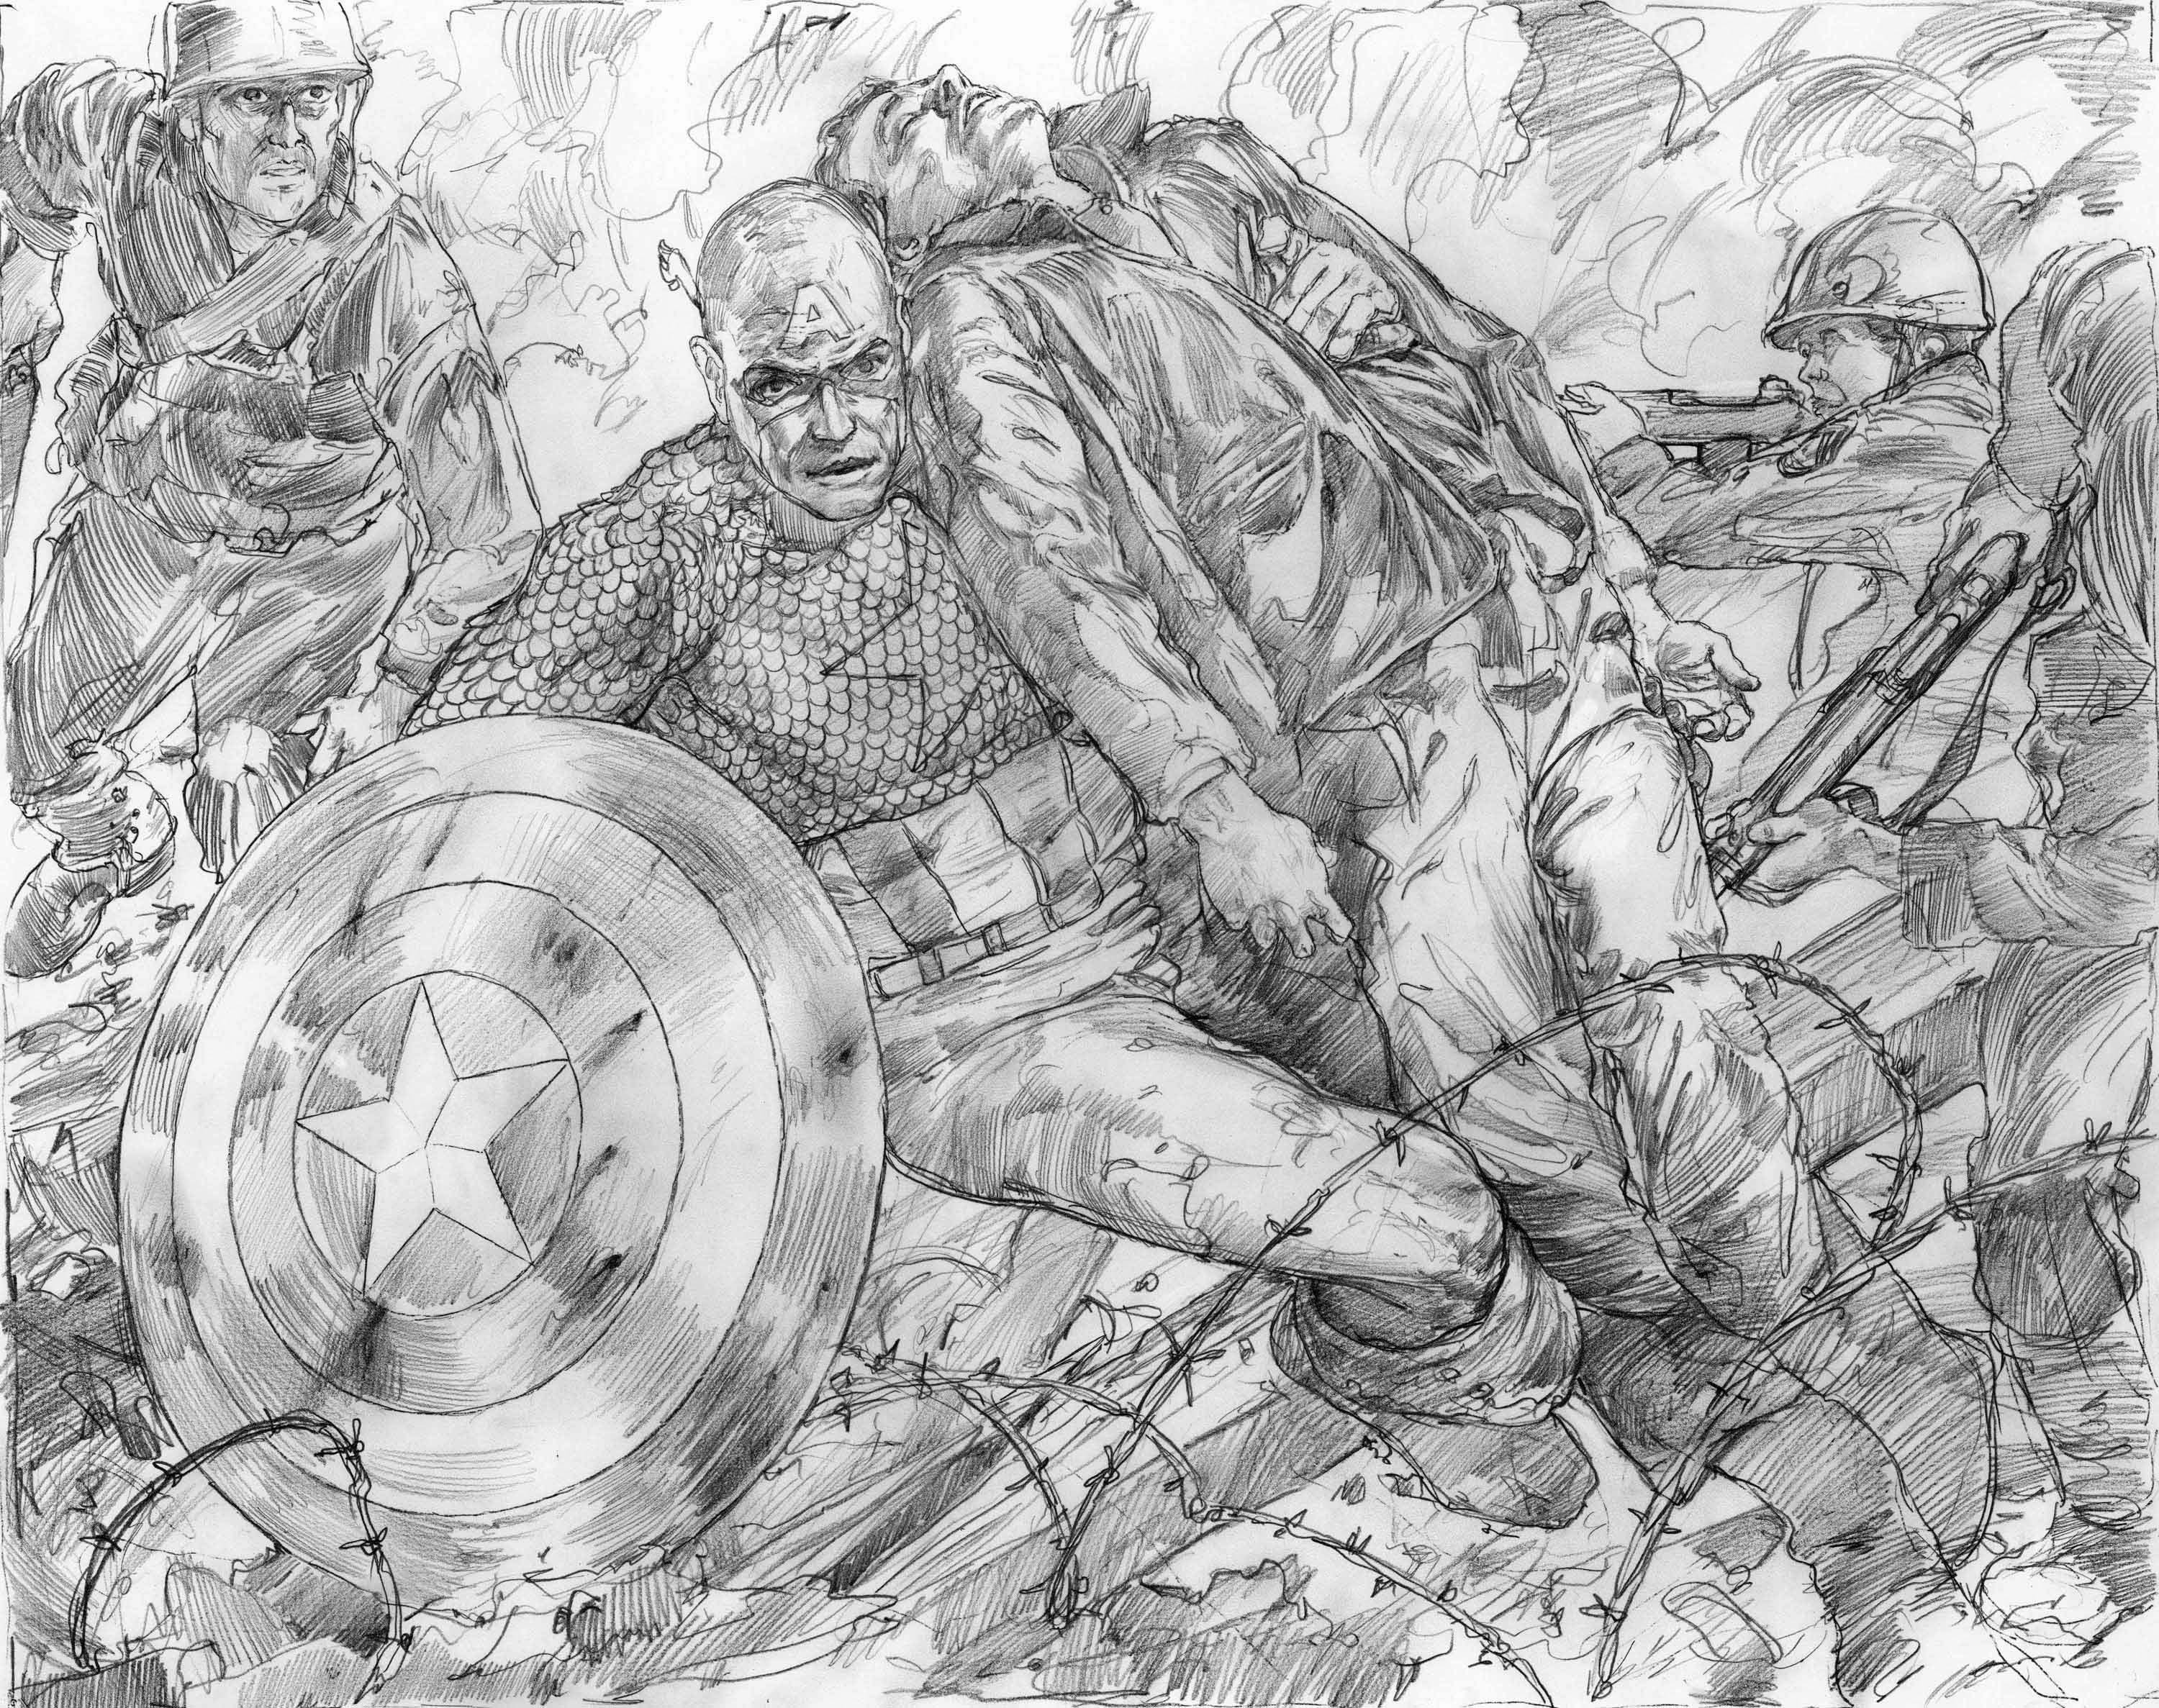 https://0201.nccdn.net/1_2/000/000/11d/798/CaptainAmerica-Duty-prelim-0196-3000x2374.jpg